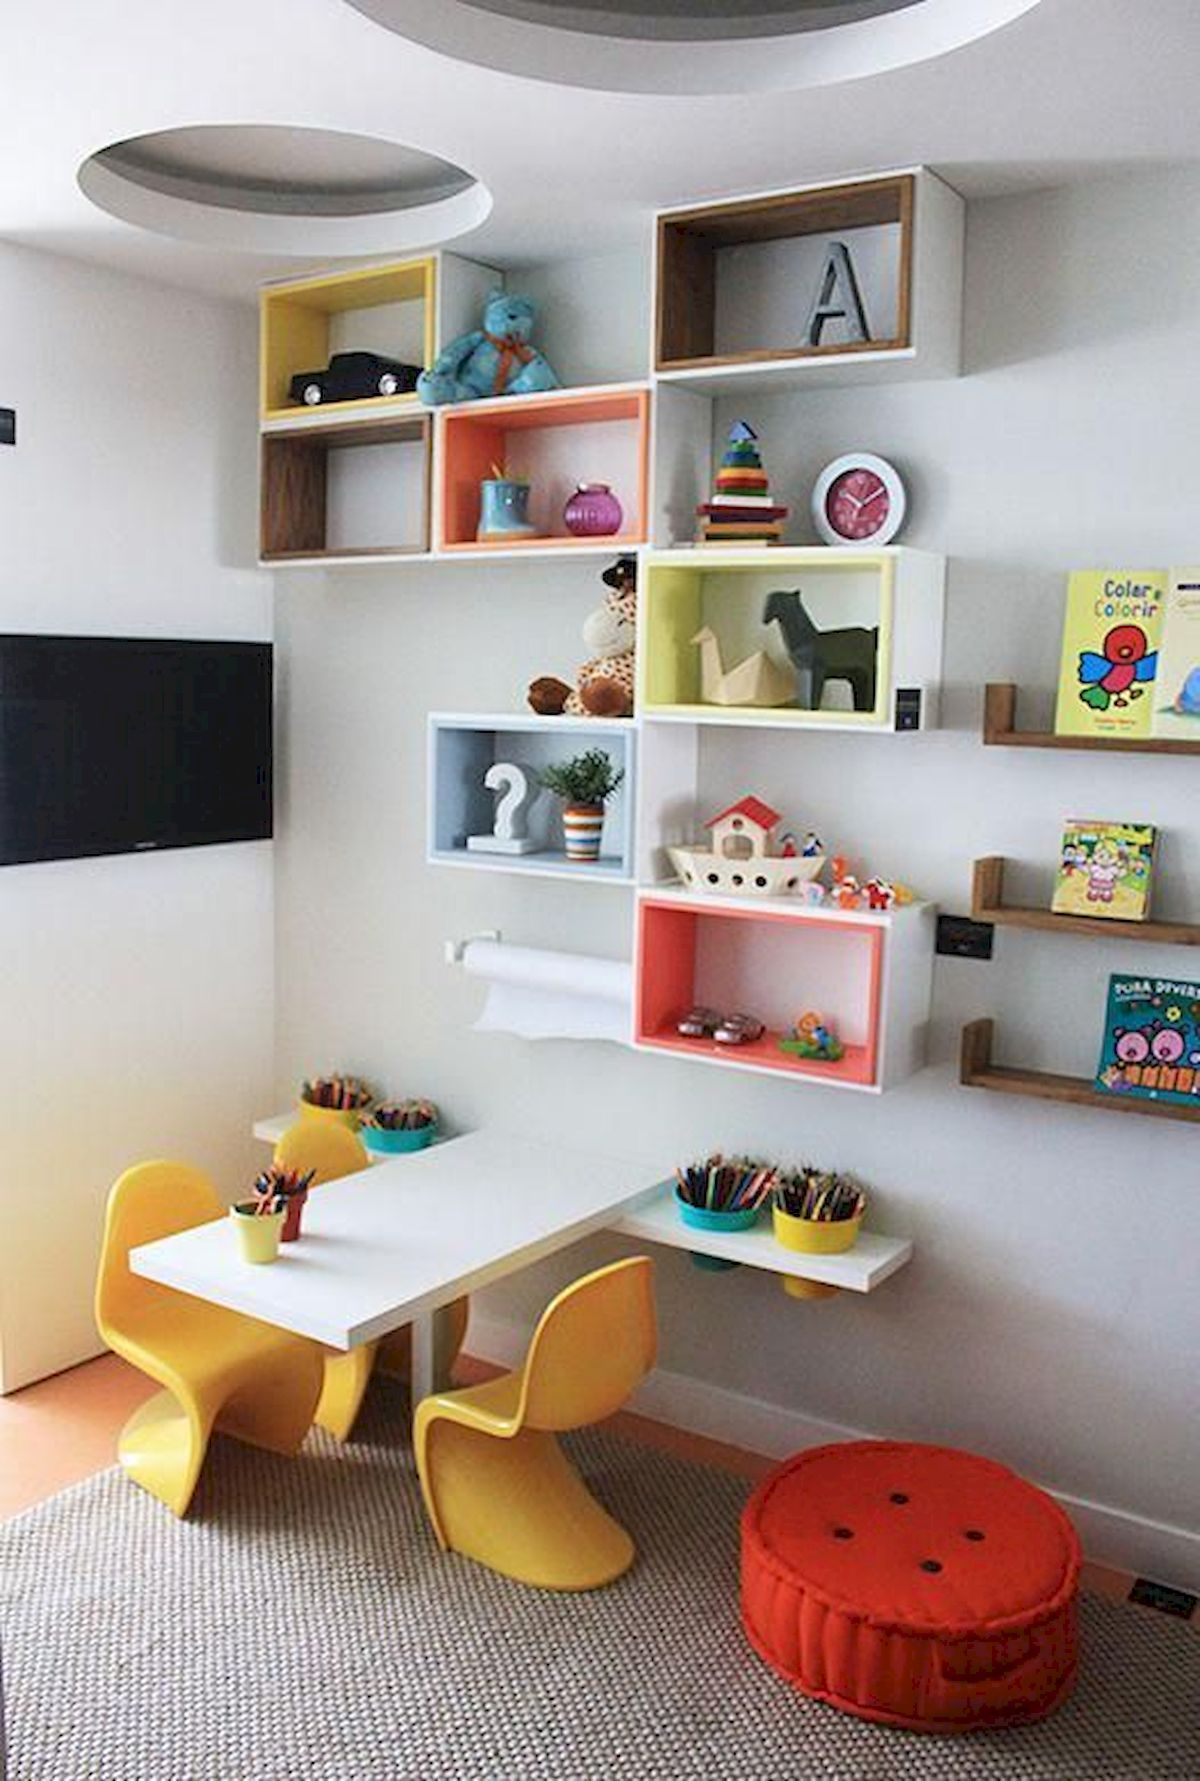 Storage Ideas For Rooms And Children's Playgrounds images